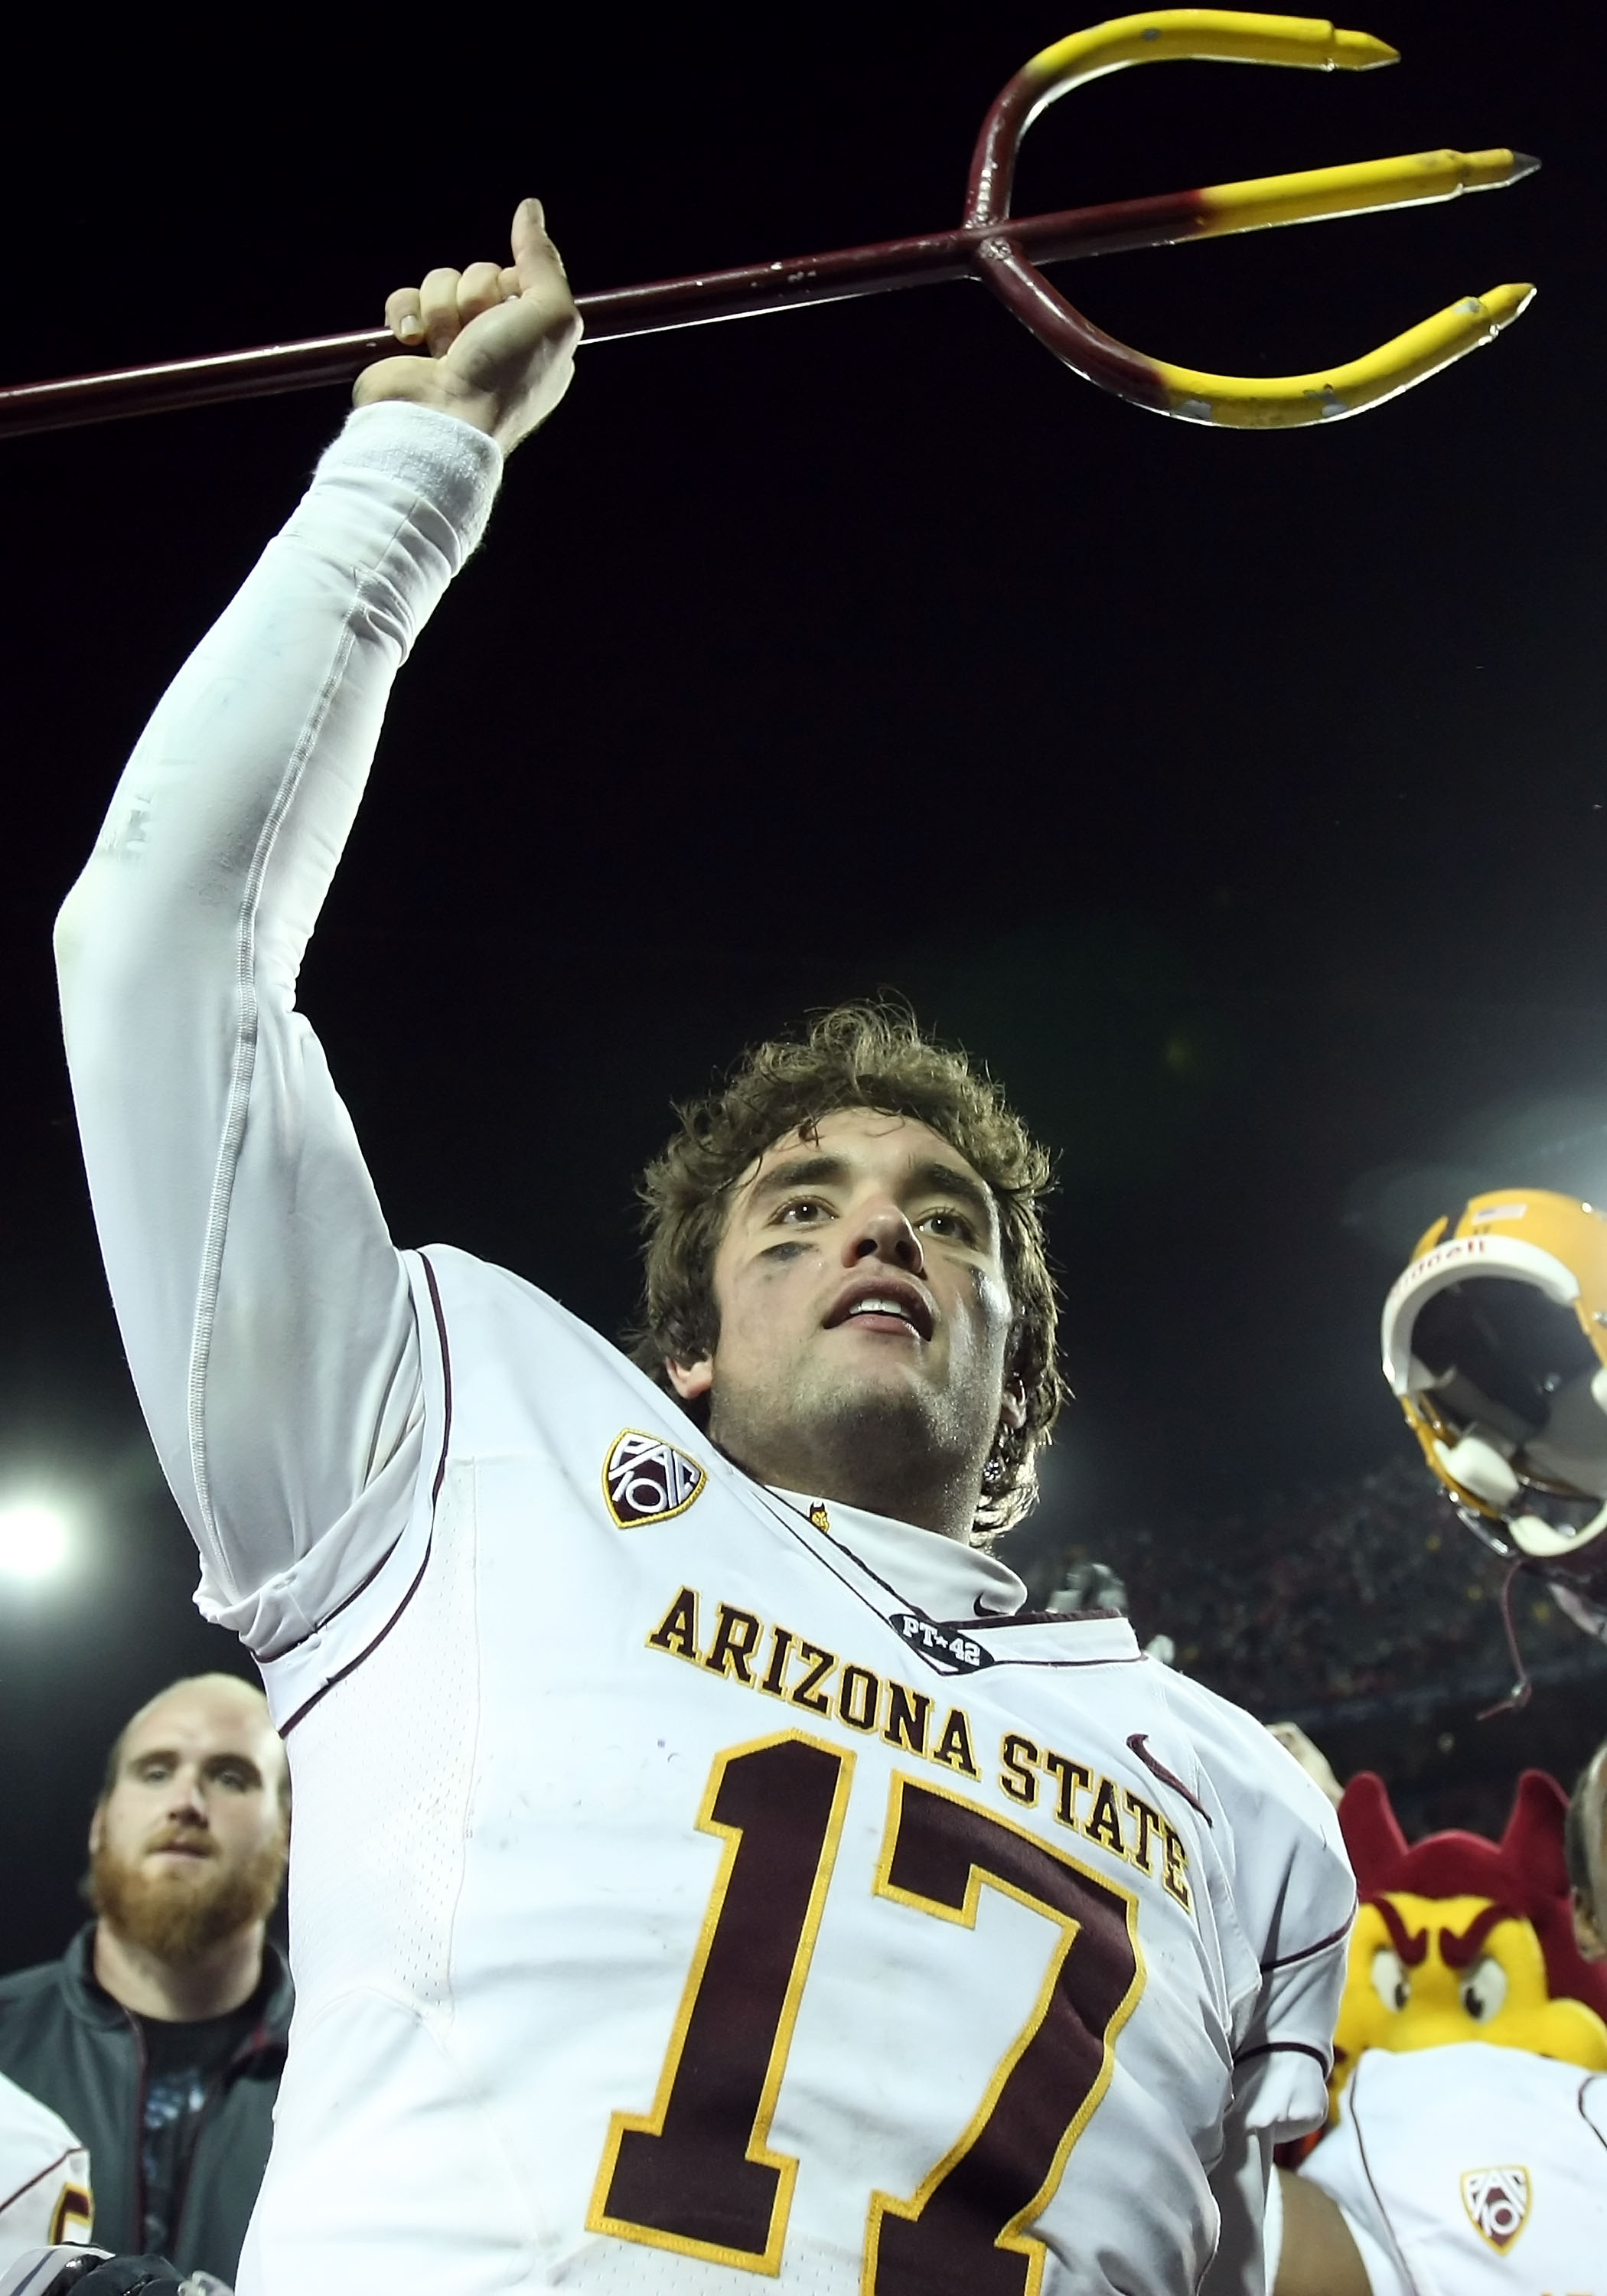 TUCSON, AZ - DECEMBER 02:  Quarterback Brock Osweiler #17 of the Arizona State Sun Devils celebrates after defeating the Arizona Wildcats in college football game at Arizona Stadium on December 2, 2010 in Tucson, Arizona. The Sun Devils defeated the Wildc